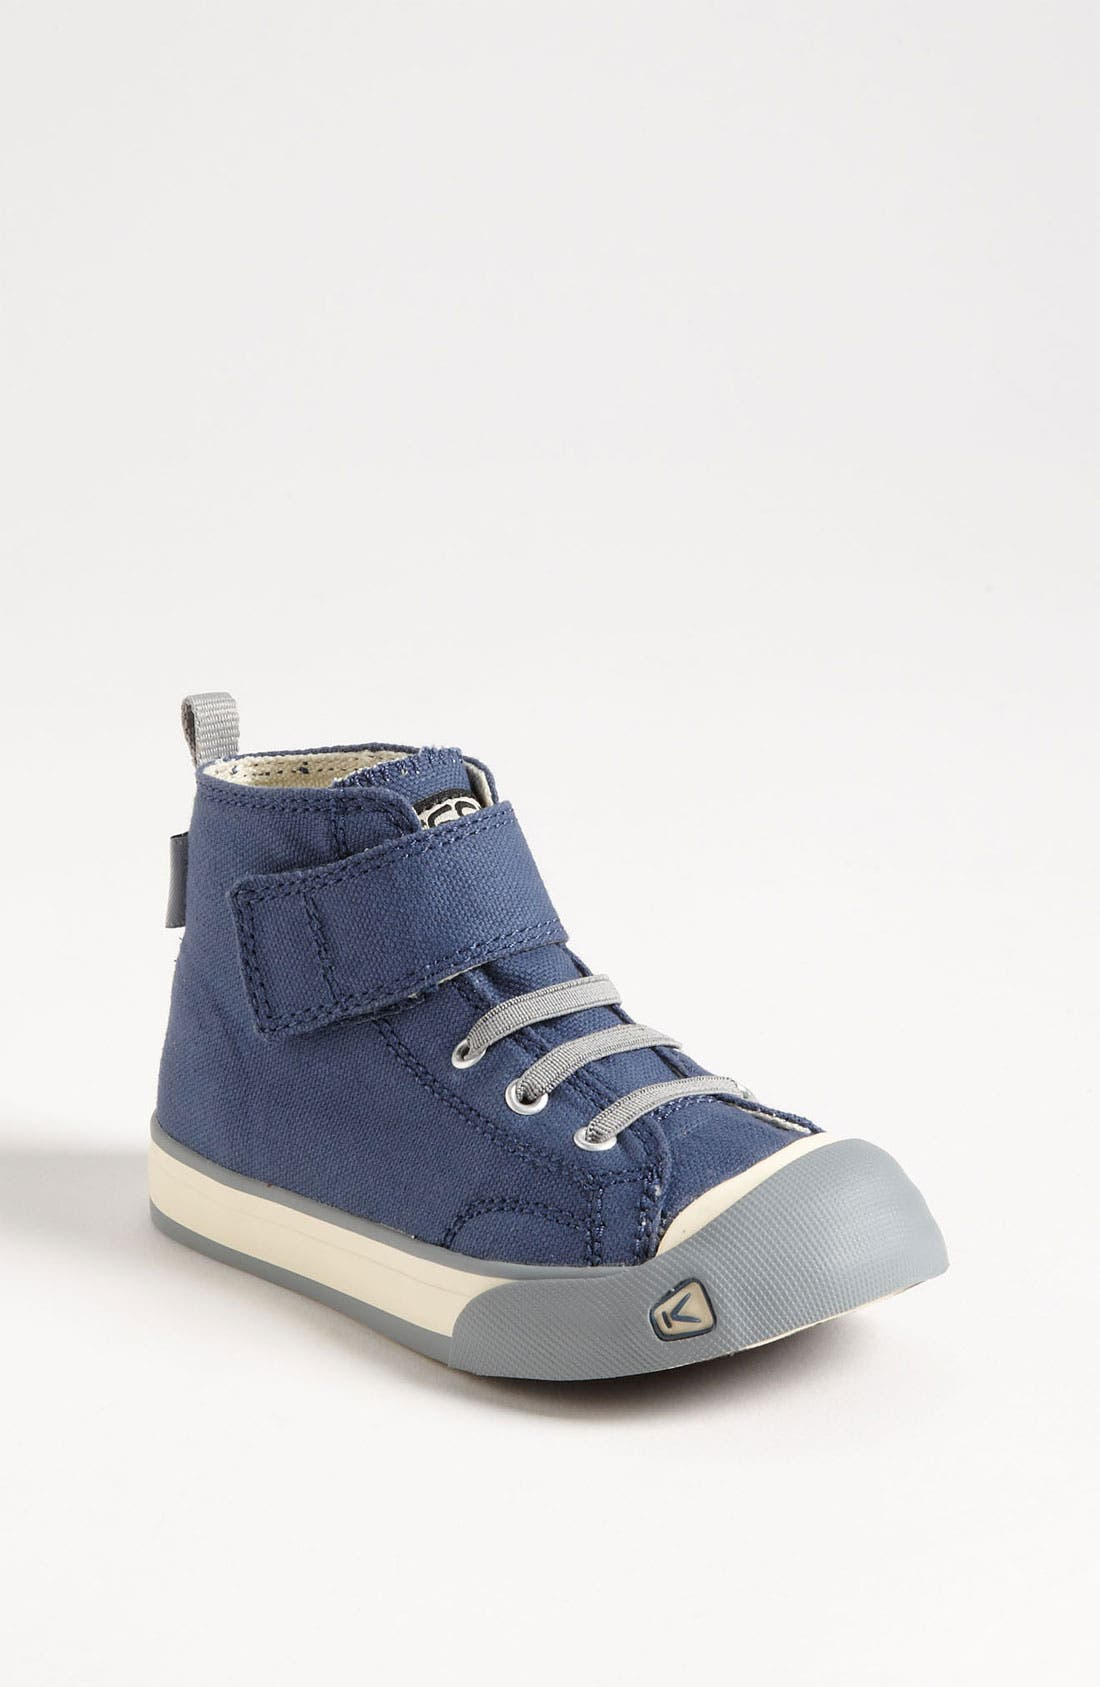 Main Image - Keen 'Coronado' High Top Sneaker (Toddler & Little Kid)